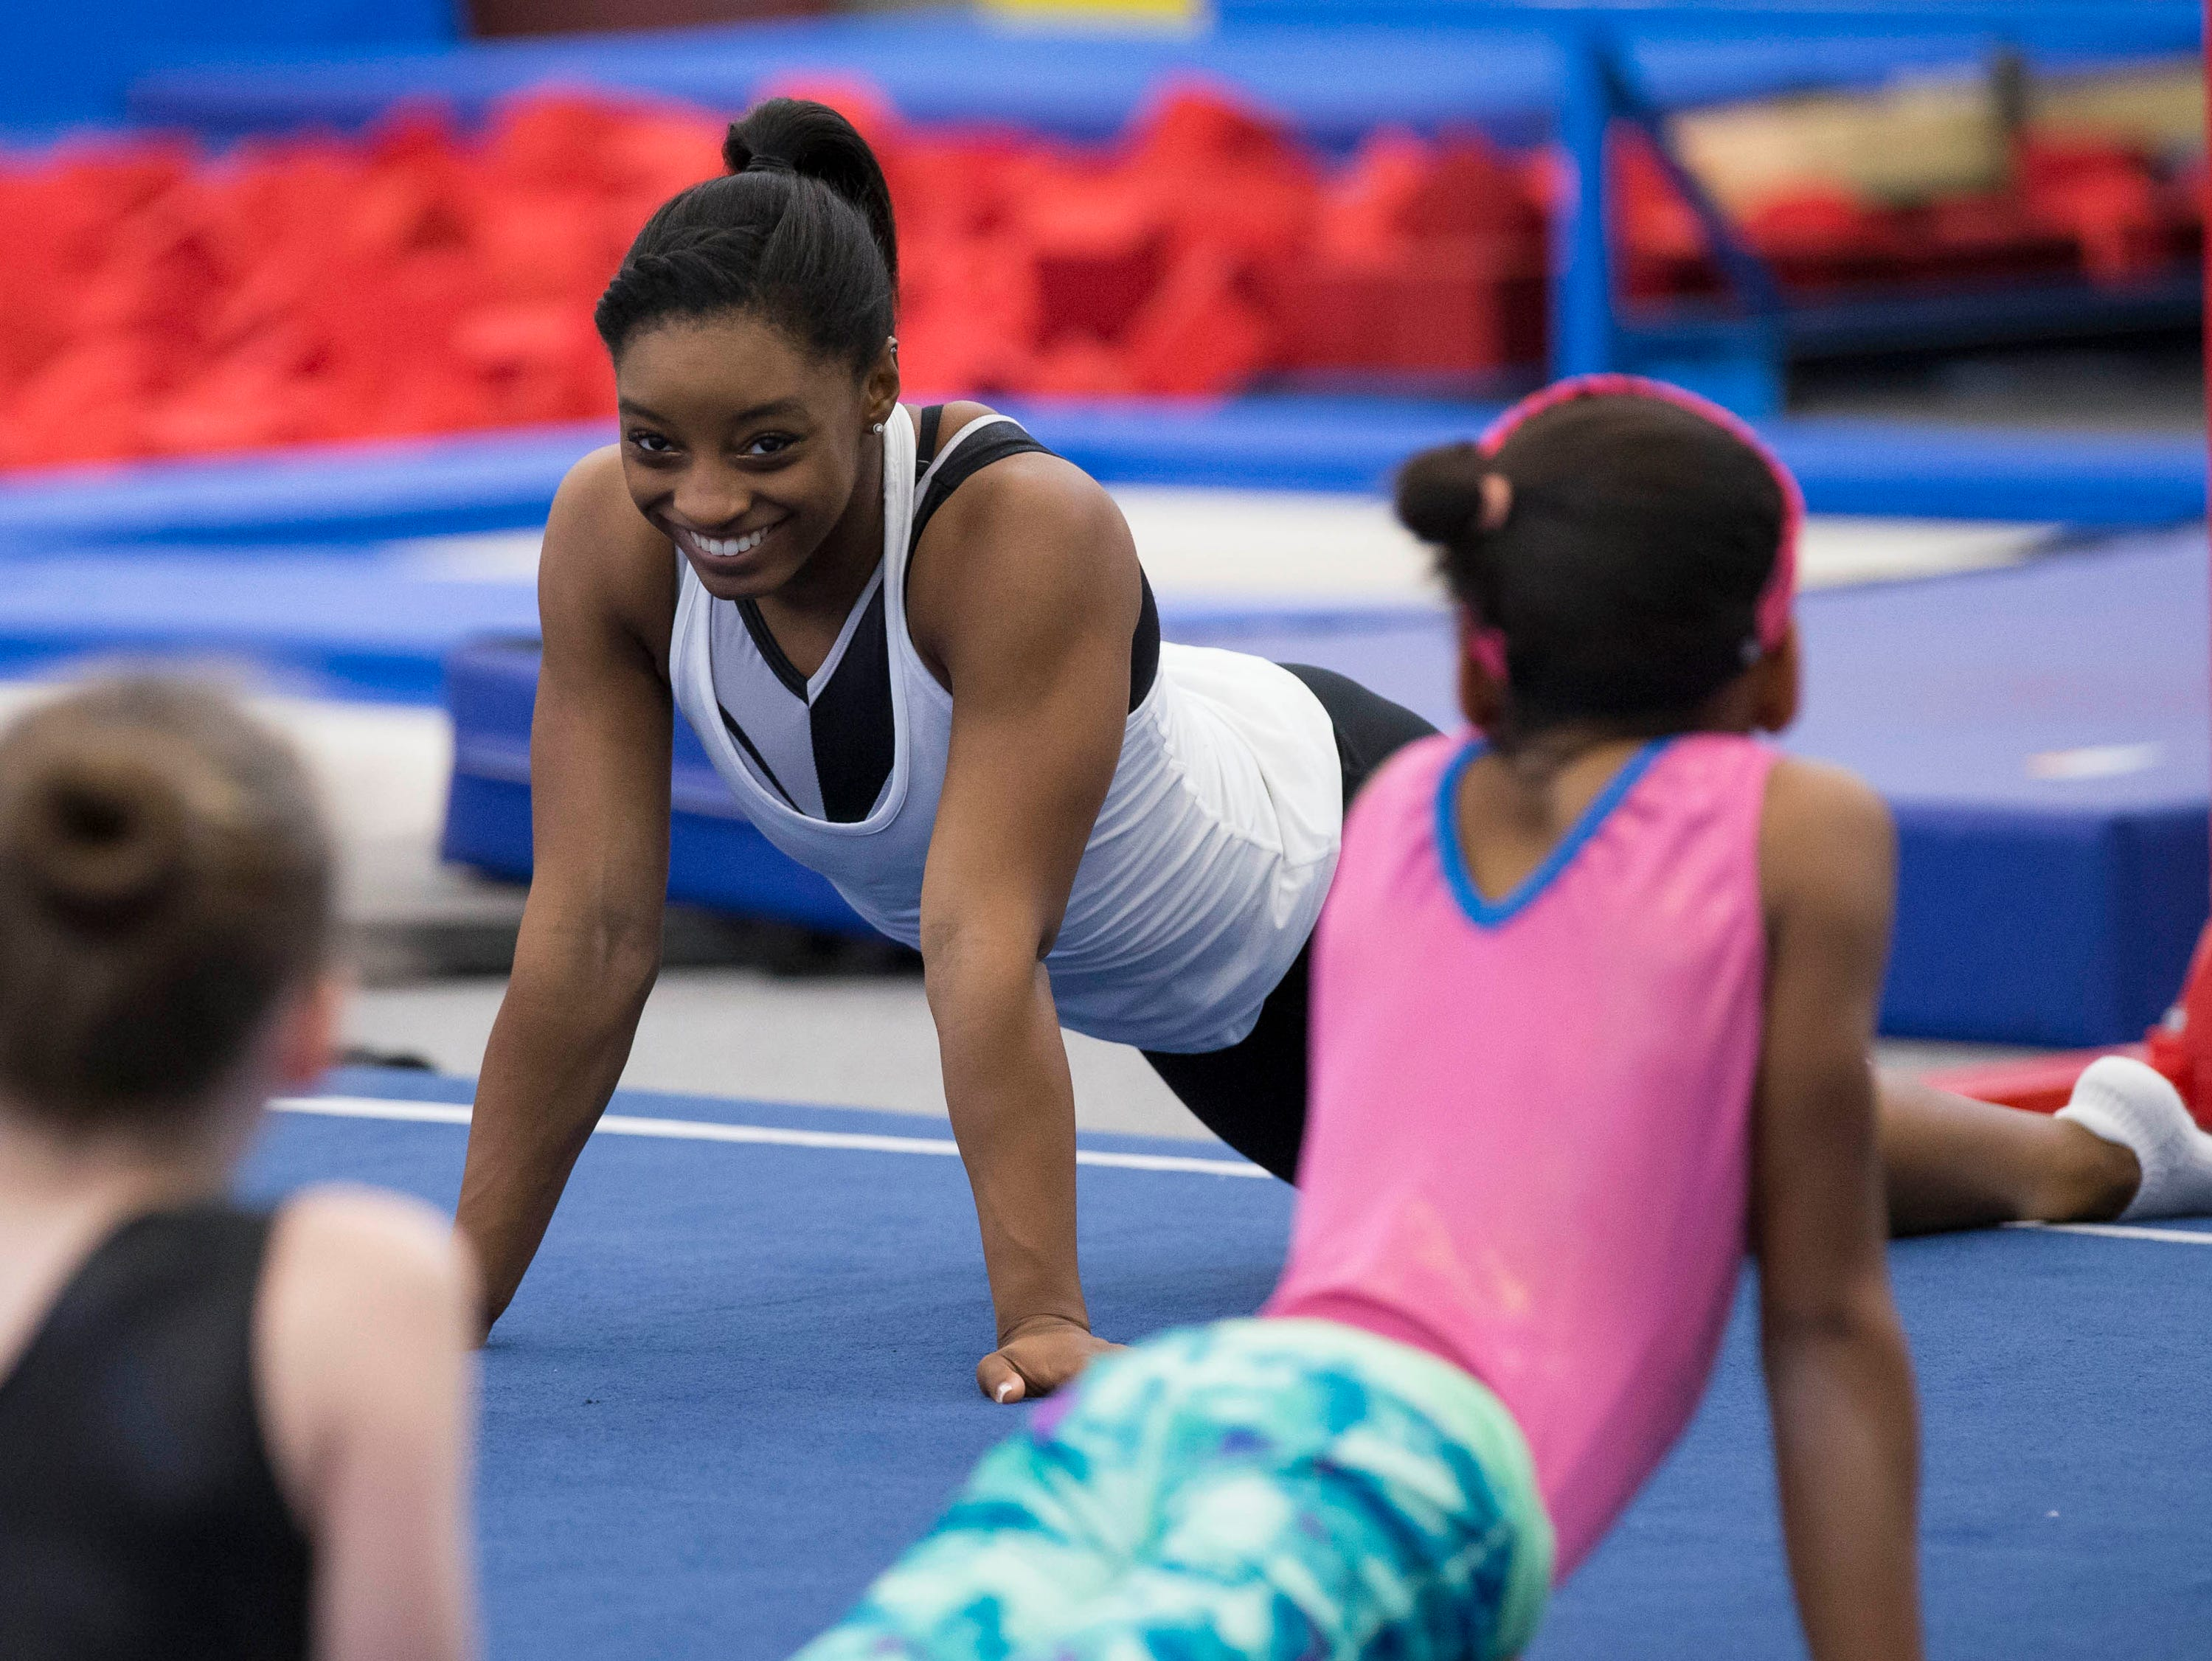 In 2015, Simone Biles chats with gymnasts during a training camp.